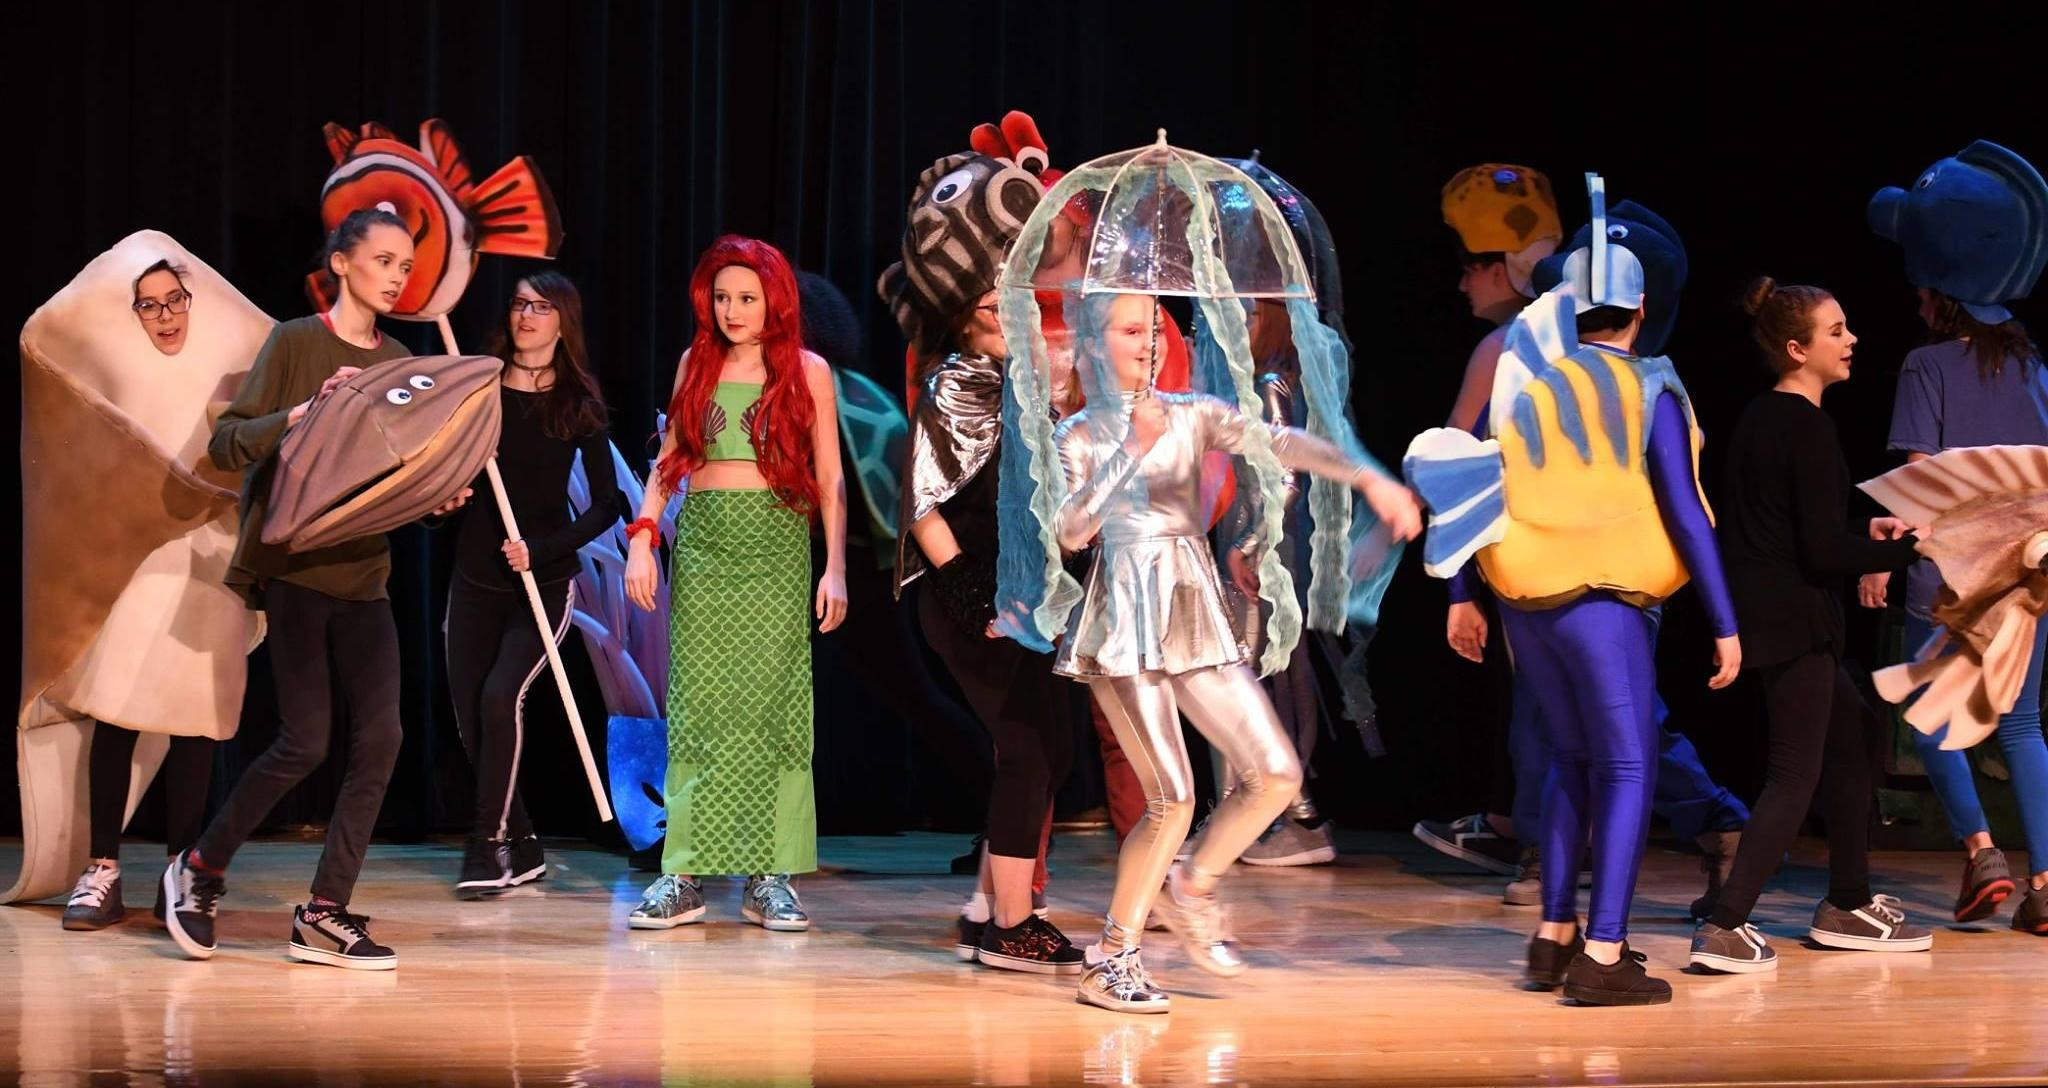 students on stage in fanciful costumes for a production of The Little Mermaid: a flounder, clam, red-haired mermaid (Ariel), jellyfish, clownfish, etc.